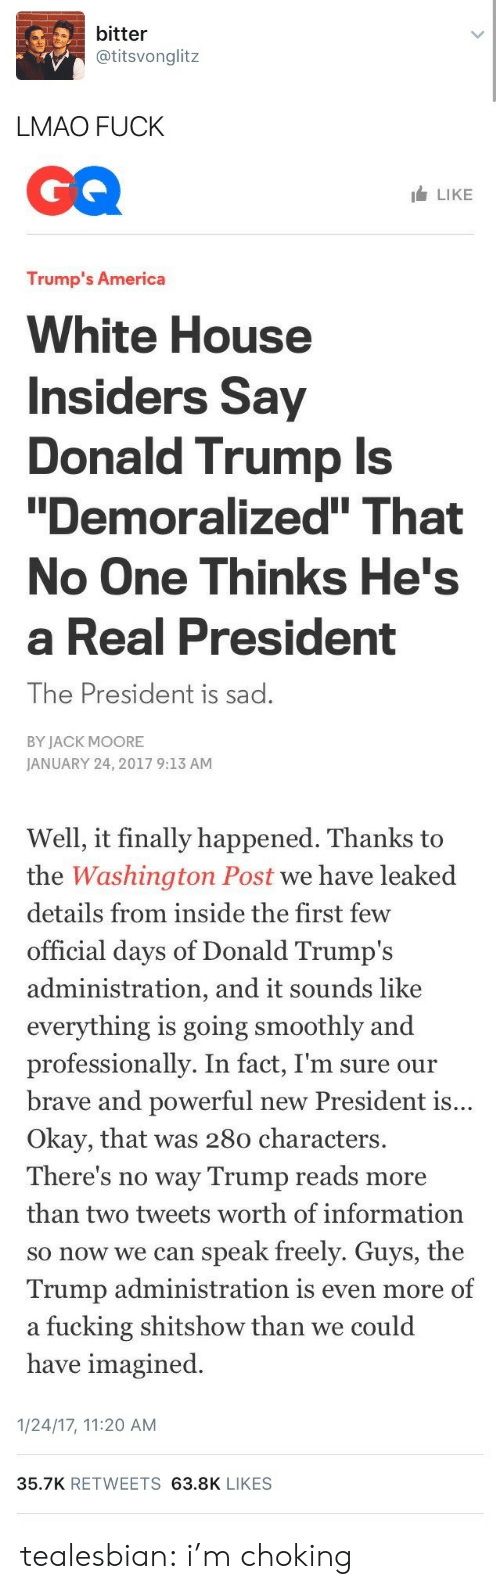 """America, Donald Trump, and Lmao: bitter  @titsvonglitz  LMAO FUCK   LIKE  Trump's America  White House  Insiders Say  Donald Trump Is  Demoralized"""" That  No One Thinks He's  a Real President  The President is sad.  BY JACK MOORE  JANUARY 24, 2017 9:13 AM   Well, it finally happened. Thanks to  the Washington Post we have leaked  details from inside the first  official days of Donald Trump's  administration, an  everything is going smoothly and  professionally. In fact, I'm sure our  brave and powerful new President is  Okay, that was 280 characters.  There's no way Trump reads more  than two tweets worth of information  so now we can speak freely. Guys, the  Trump administration is even more of  a fucking shitshow than we could  have imagined  few  d it sounds like  ...   1/24/17, 11:20 AM  35.7K RETWEETS 63.8K LIKES tealesbian: i'm choking"""